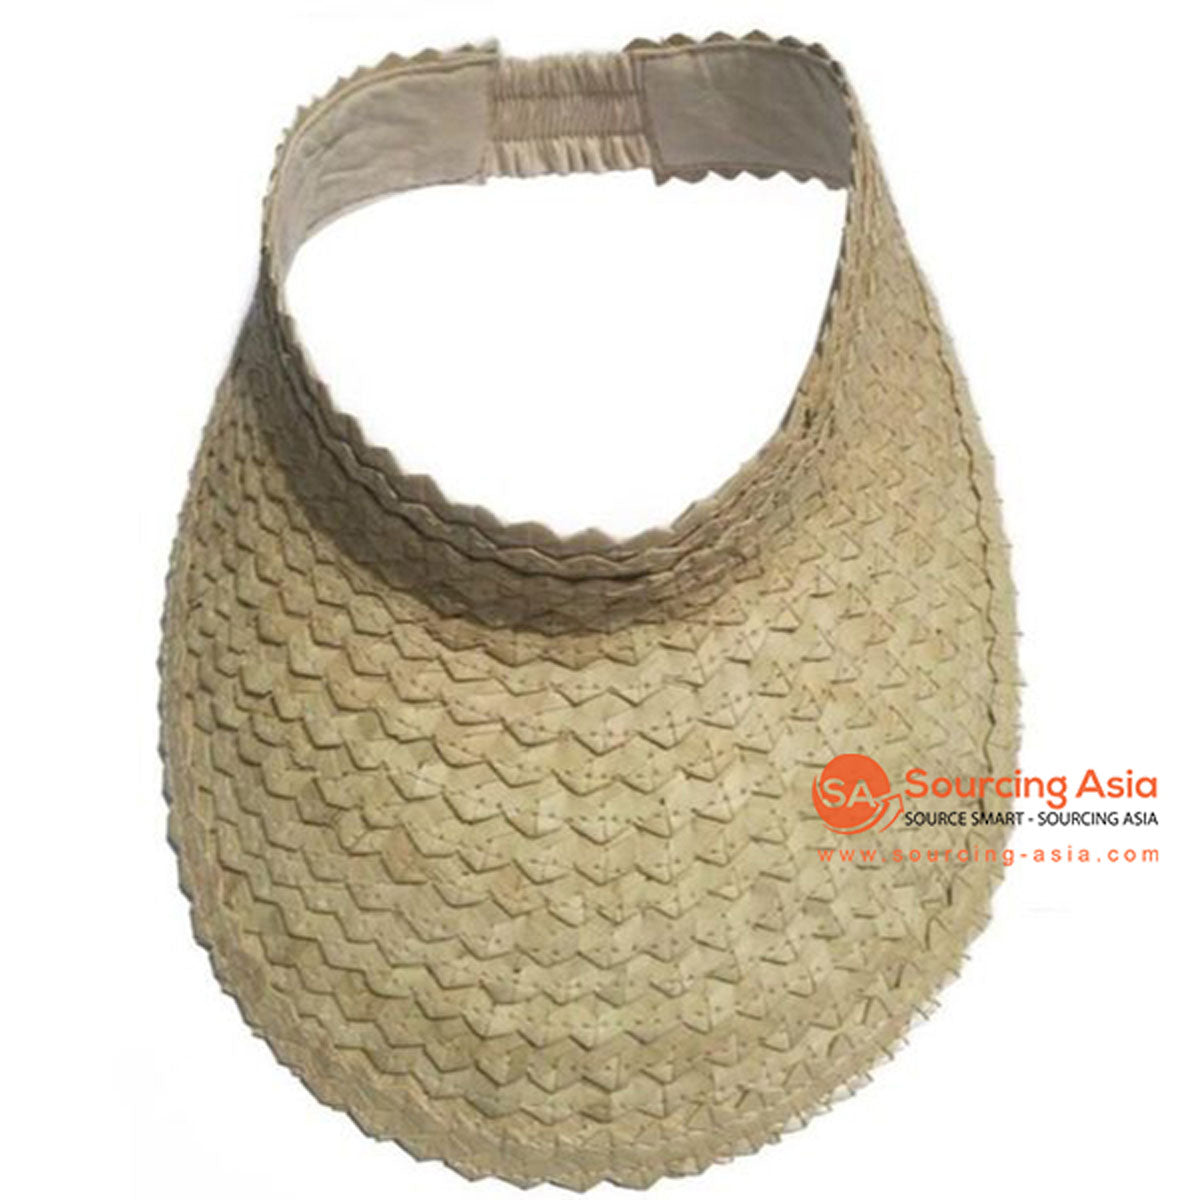 SHL044 NATURAL PALM LEAF SN VISOR HAT